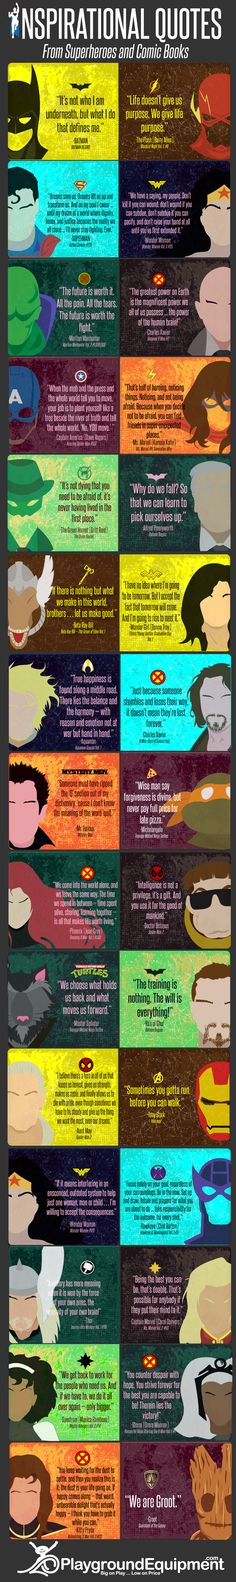 Inspirational Quotes from Superheroes and Comic Books Infographic - http://elearninginfographics.com/inspirational-quotes-superheroes-comic-books-infographic/